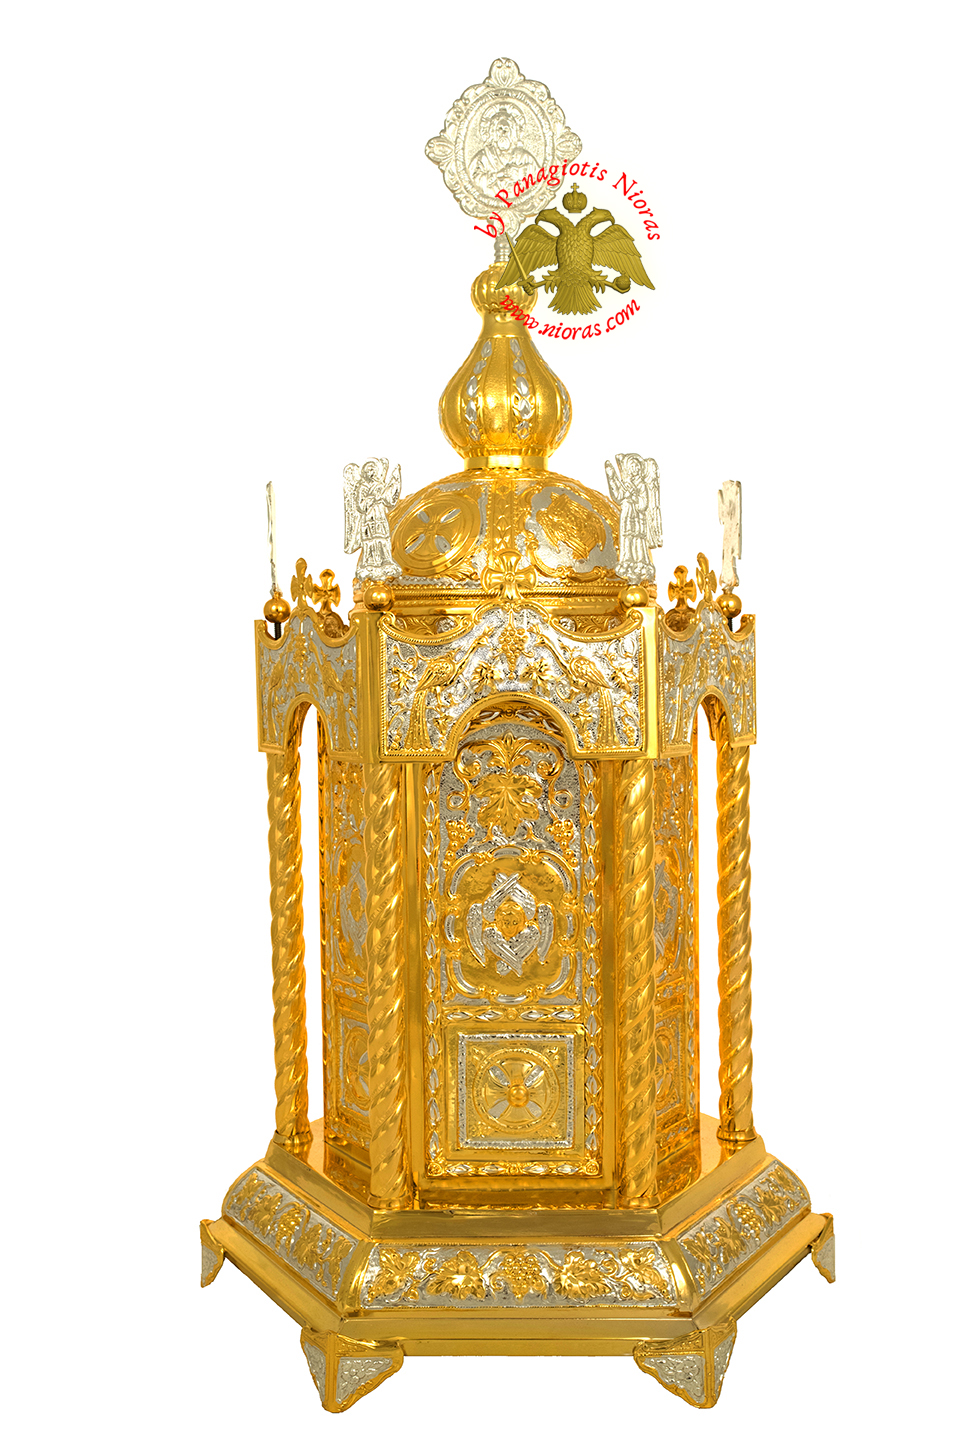 Holy Table Orthodox Tabernacle Hexagon With Angels Hexagon Base Gold and  Silver Plated, Holy Table Tabernacle, www.Nioras.com Online Orthodox Art  Store. Greek Orthodox Incense, Holy Icons, Church Supplies and more..  Praying that